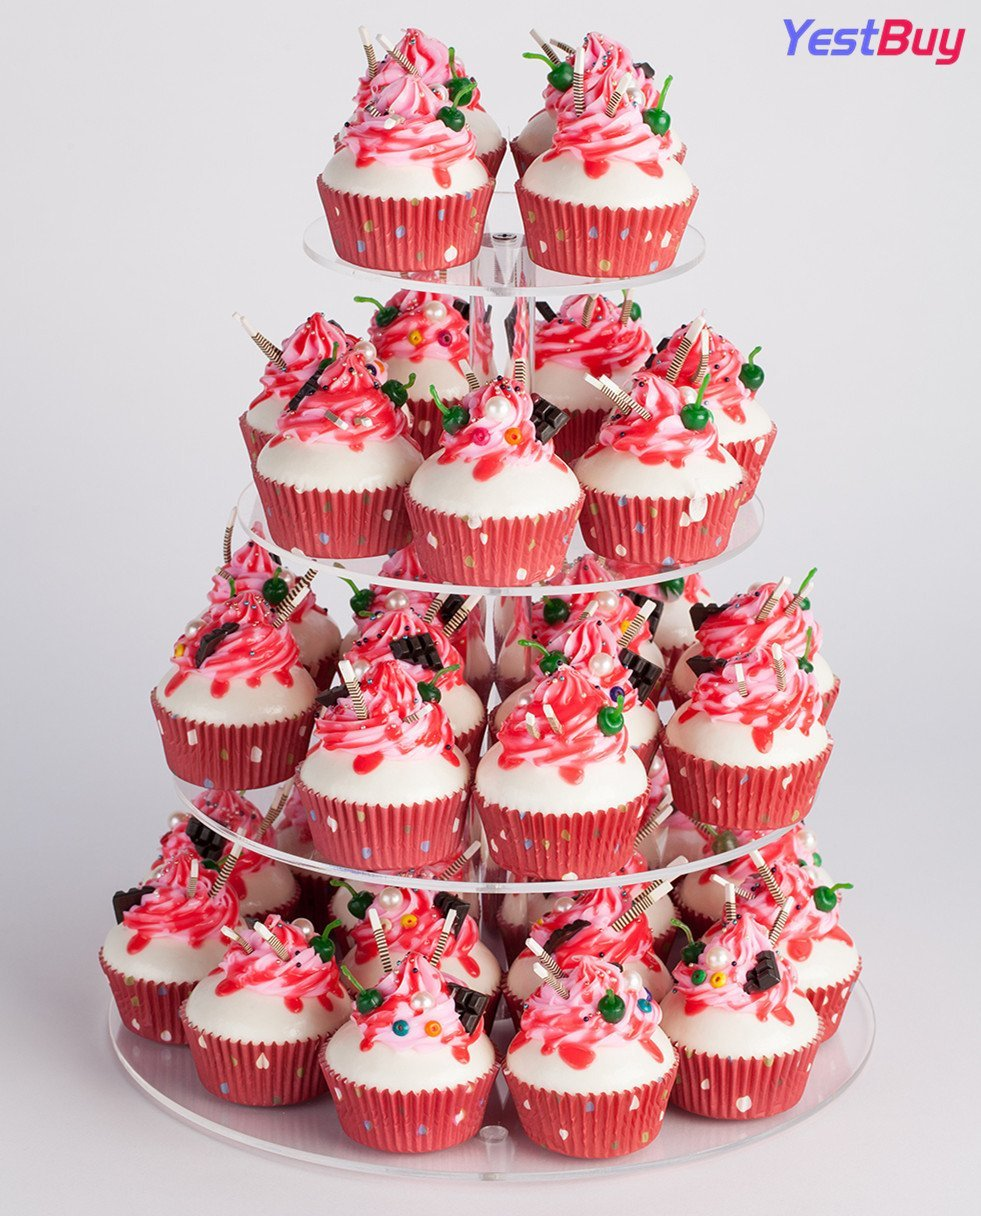 YestBuy 4 Tier Maypole Round Wedding Party Tree Tower Acrylic Cupcake Display Stand (12.8 Inches) by YestBuy (Image #4)